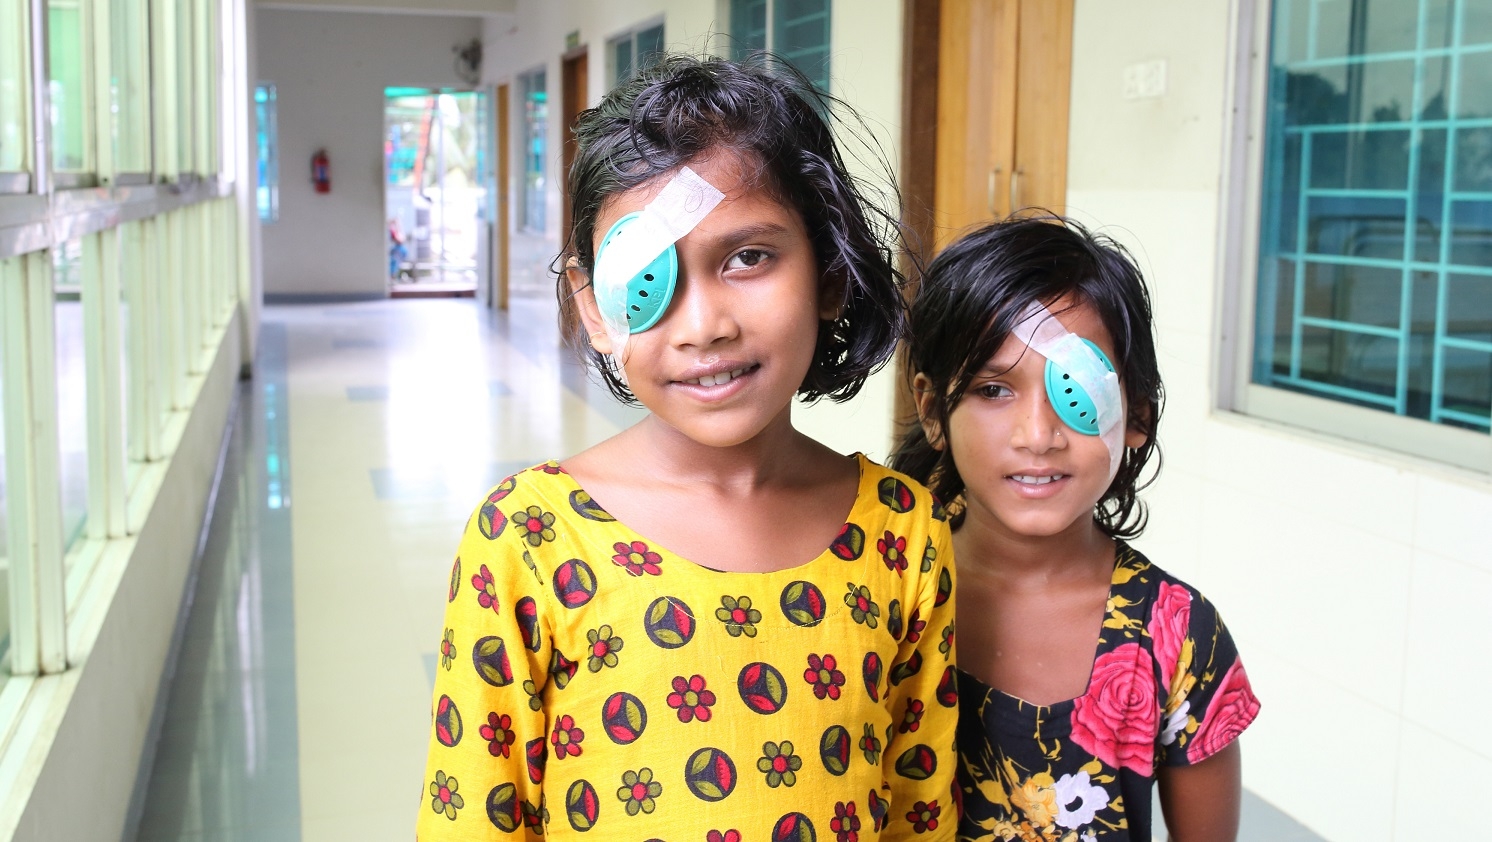 Two young girls stand together in a hospital corridor. Both are wearing colourful clothes, and have smiles on their faces. Both were wearing temporary eye patches after receiving eye surgery.